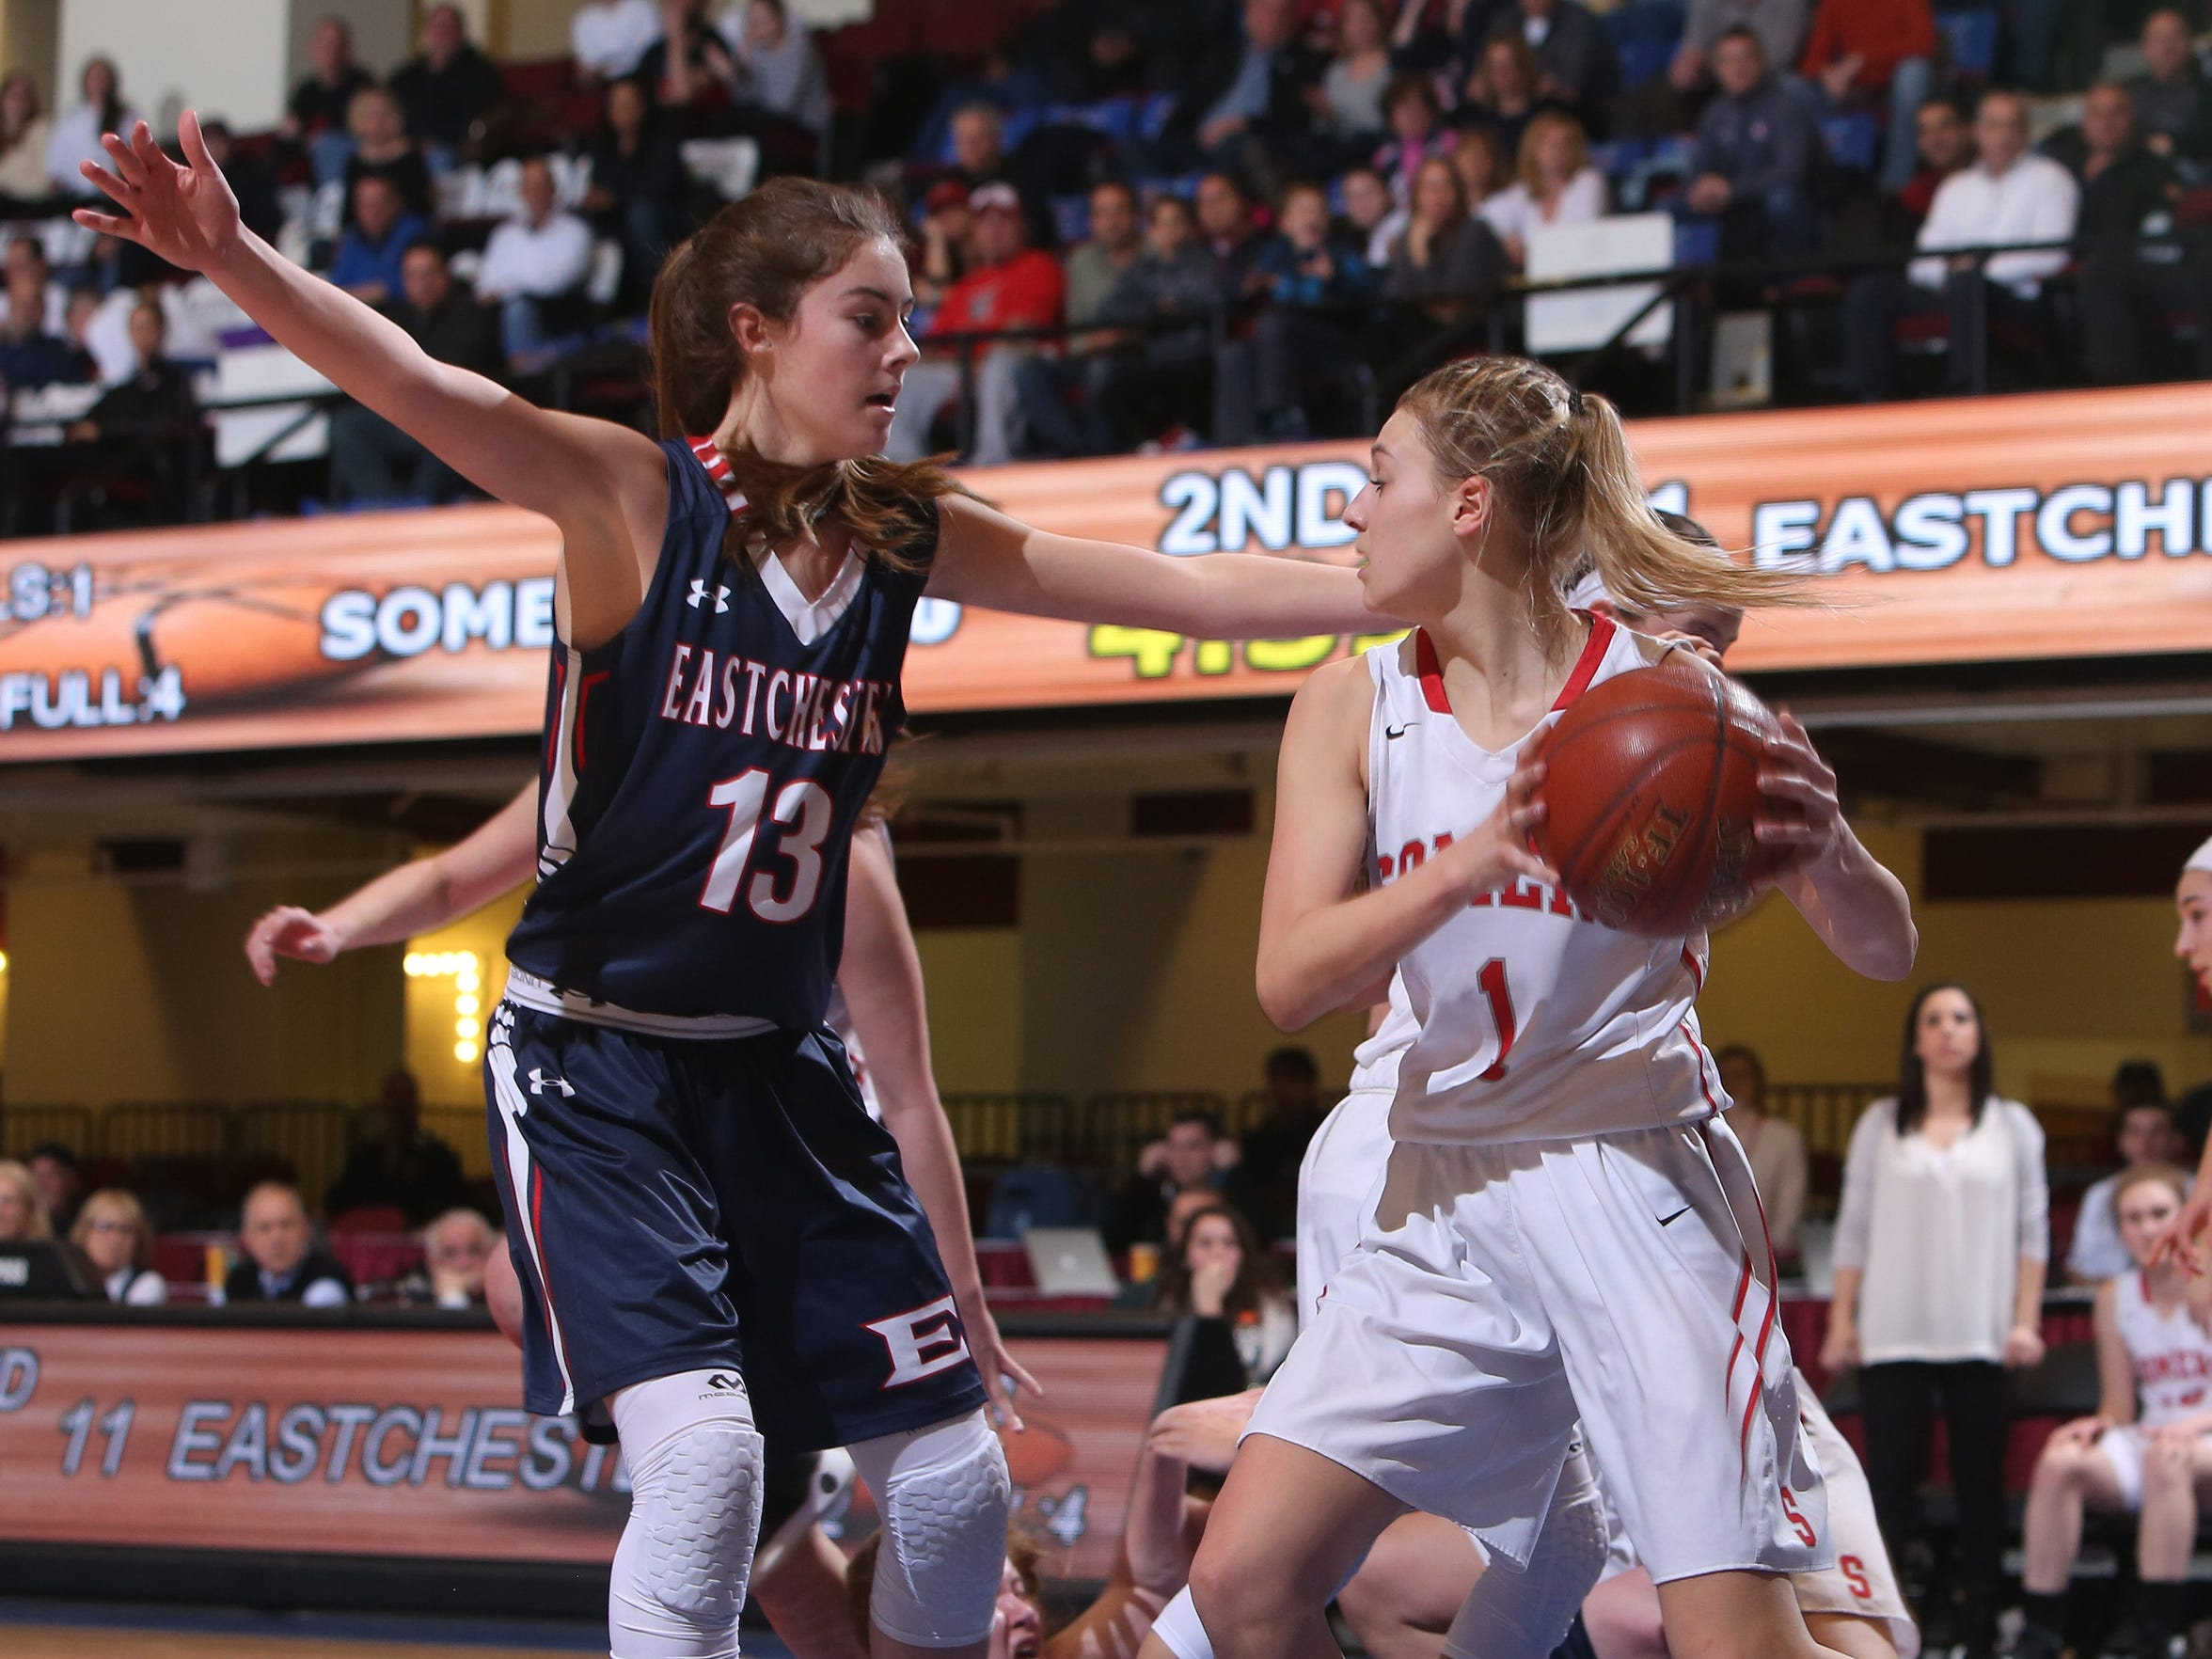 From left, Eastchester's Cassidy Mitchell  (13) blocks